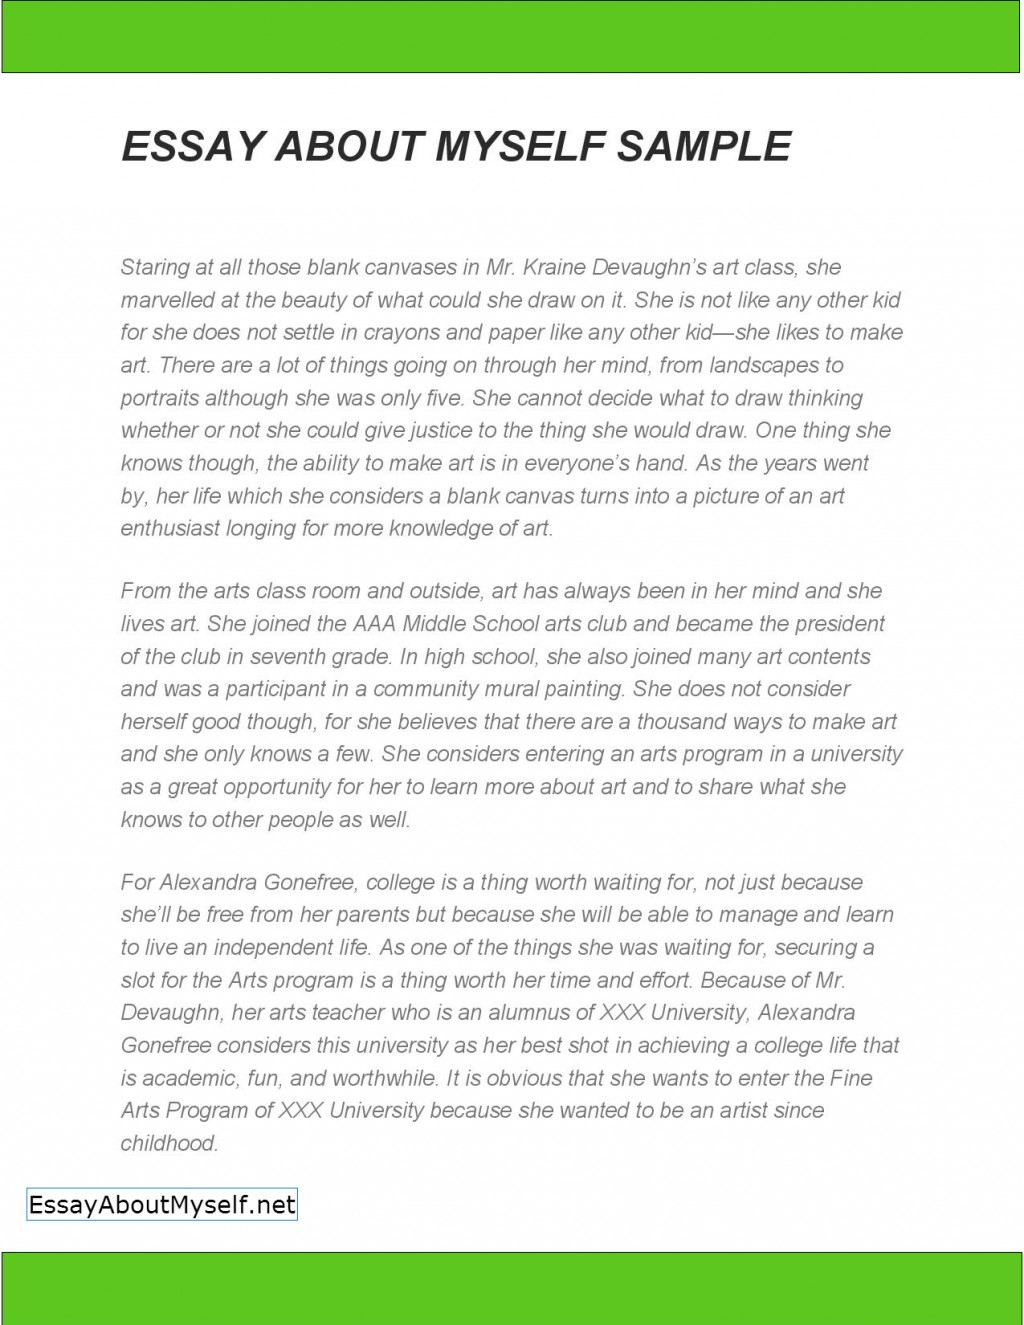 003 Essay About Myself Sample Introduction Exceptional For Job Example Large